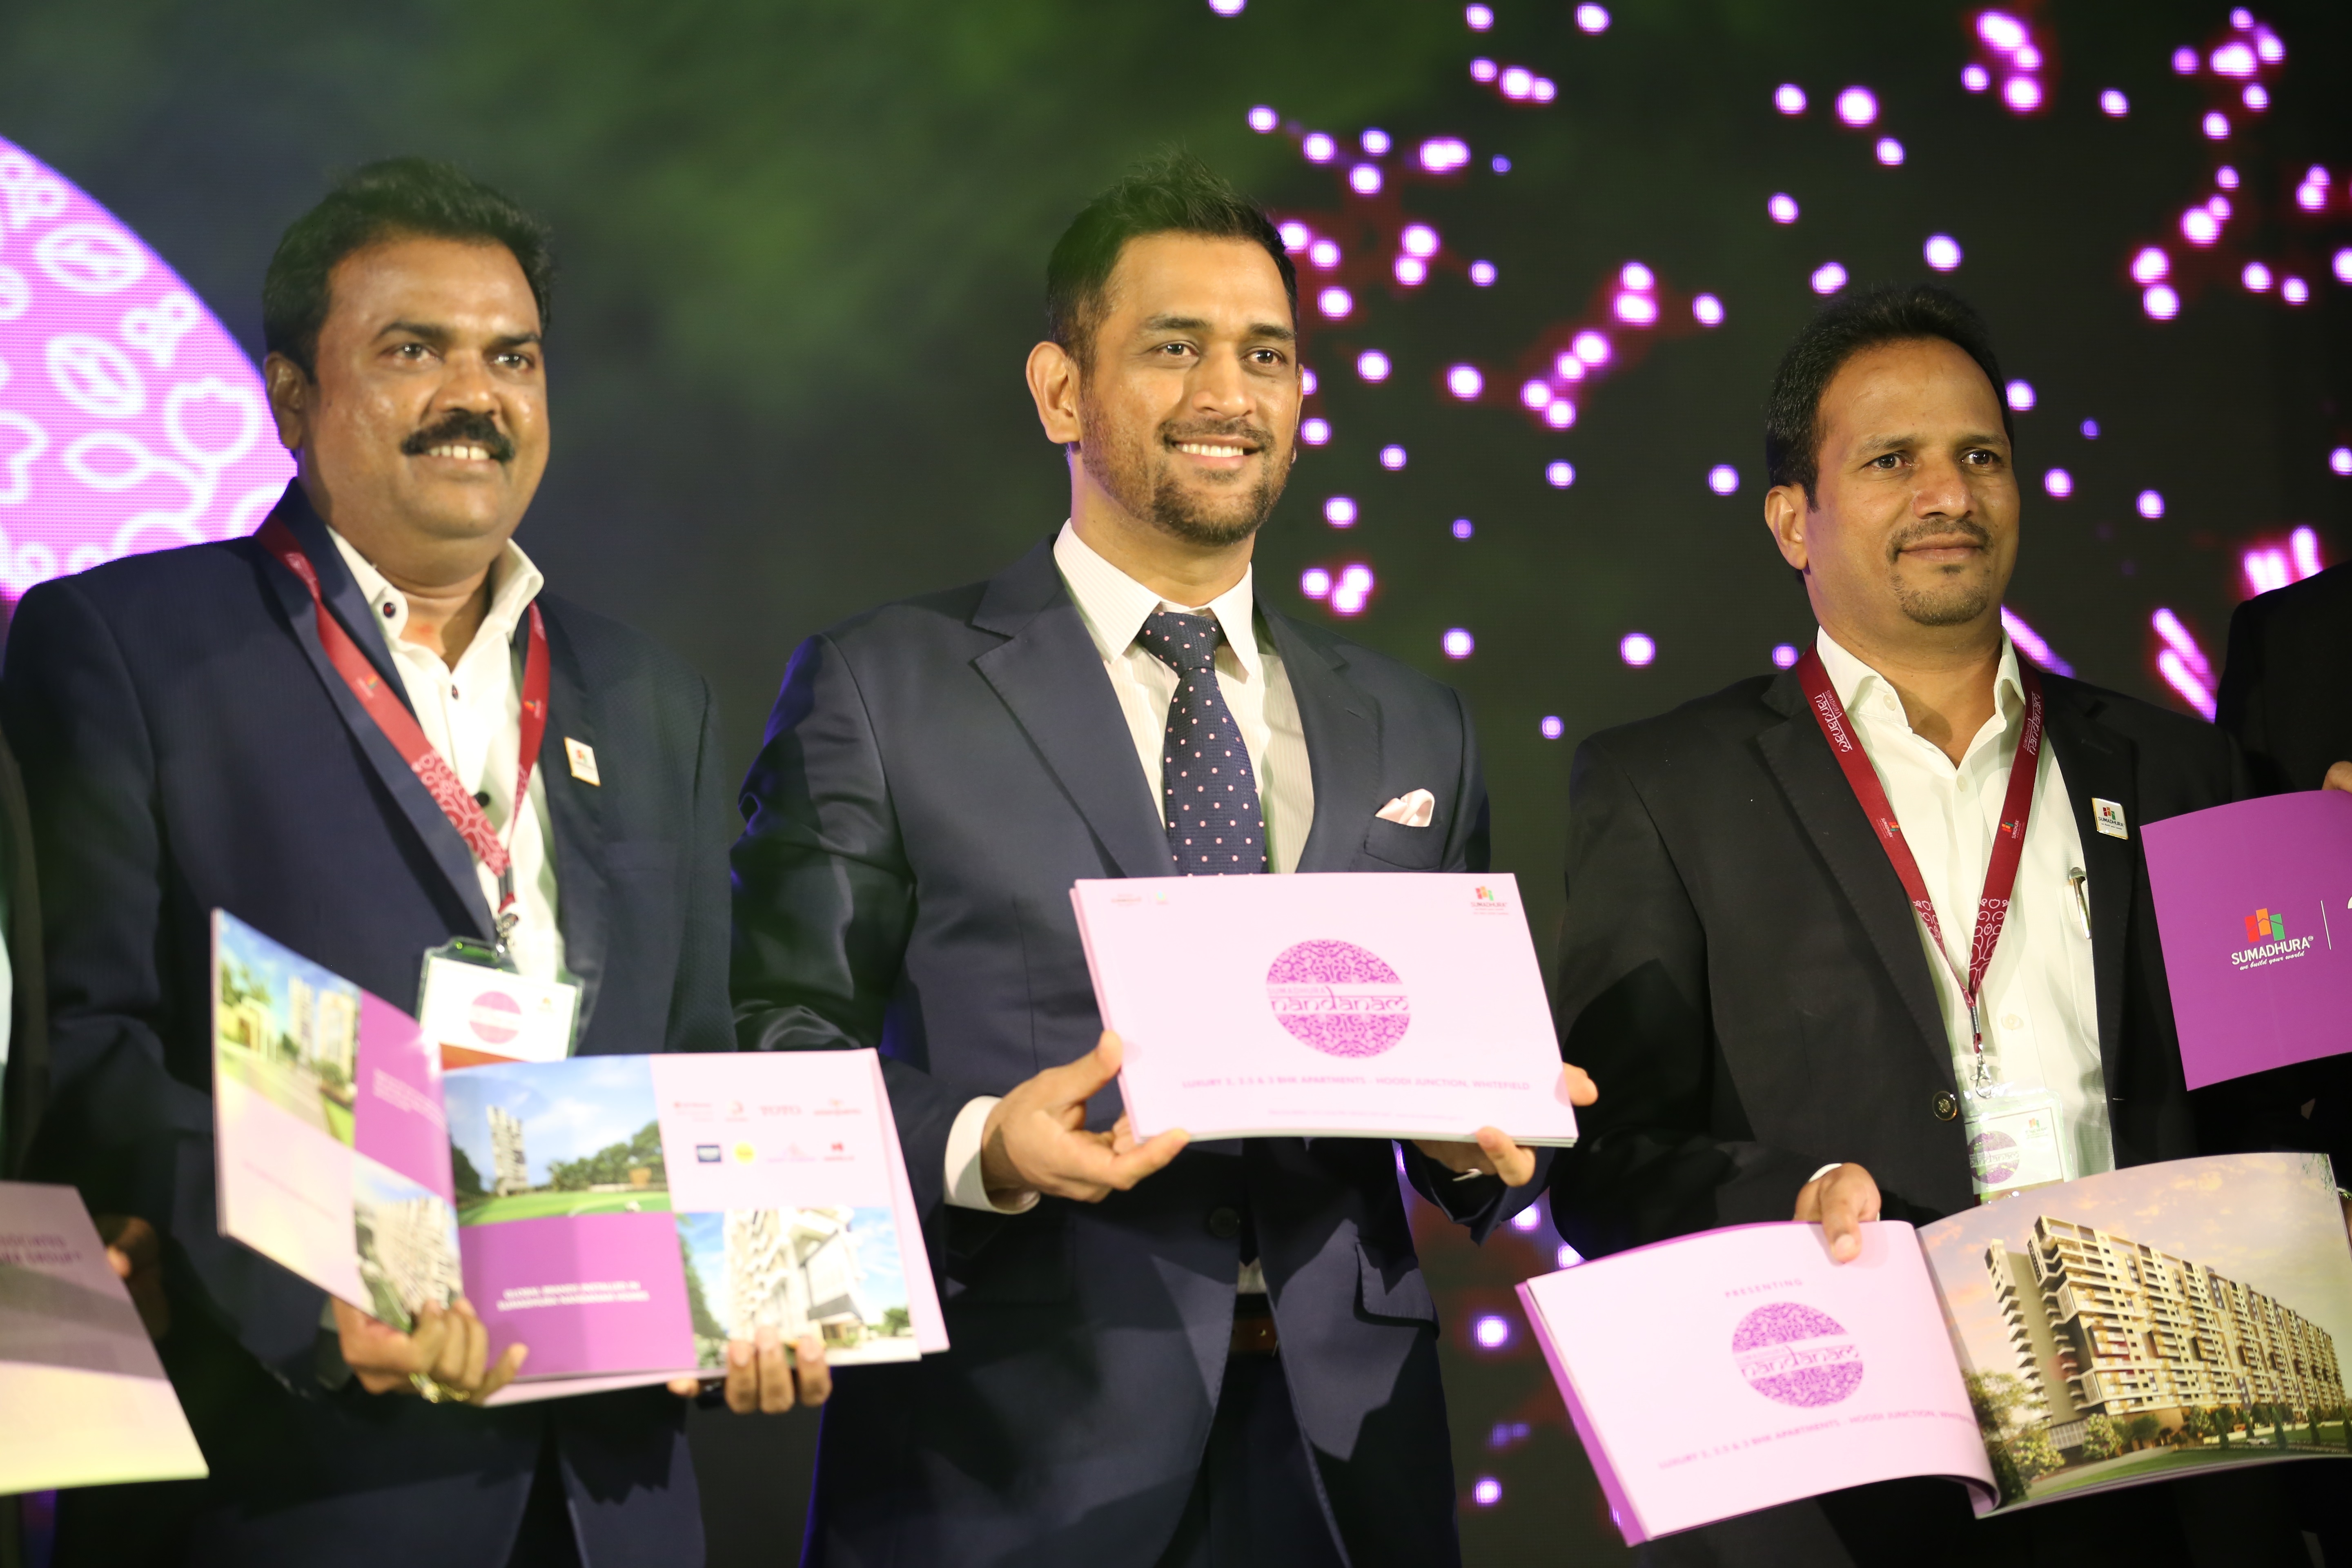 Sumadhura Nandanam, Sumadhura brand ambassador MS Dhoni, Bengaluru real estate news, Bengaluru property market news, Bengaluru property investment, India real estate news, New property launches in Bengaluru, Indian realty news, Real estate news India, Indian property market news, Track2Realty